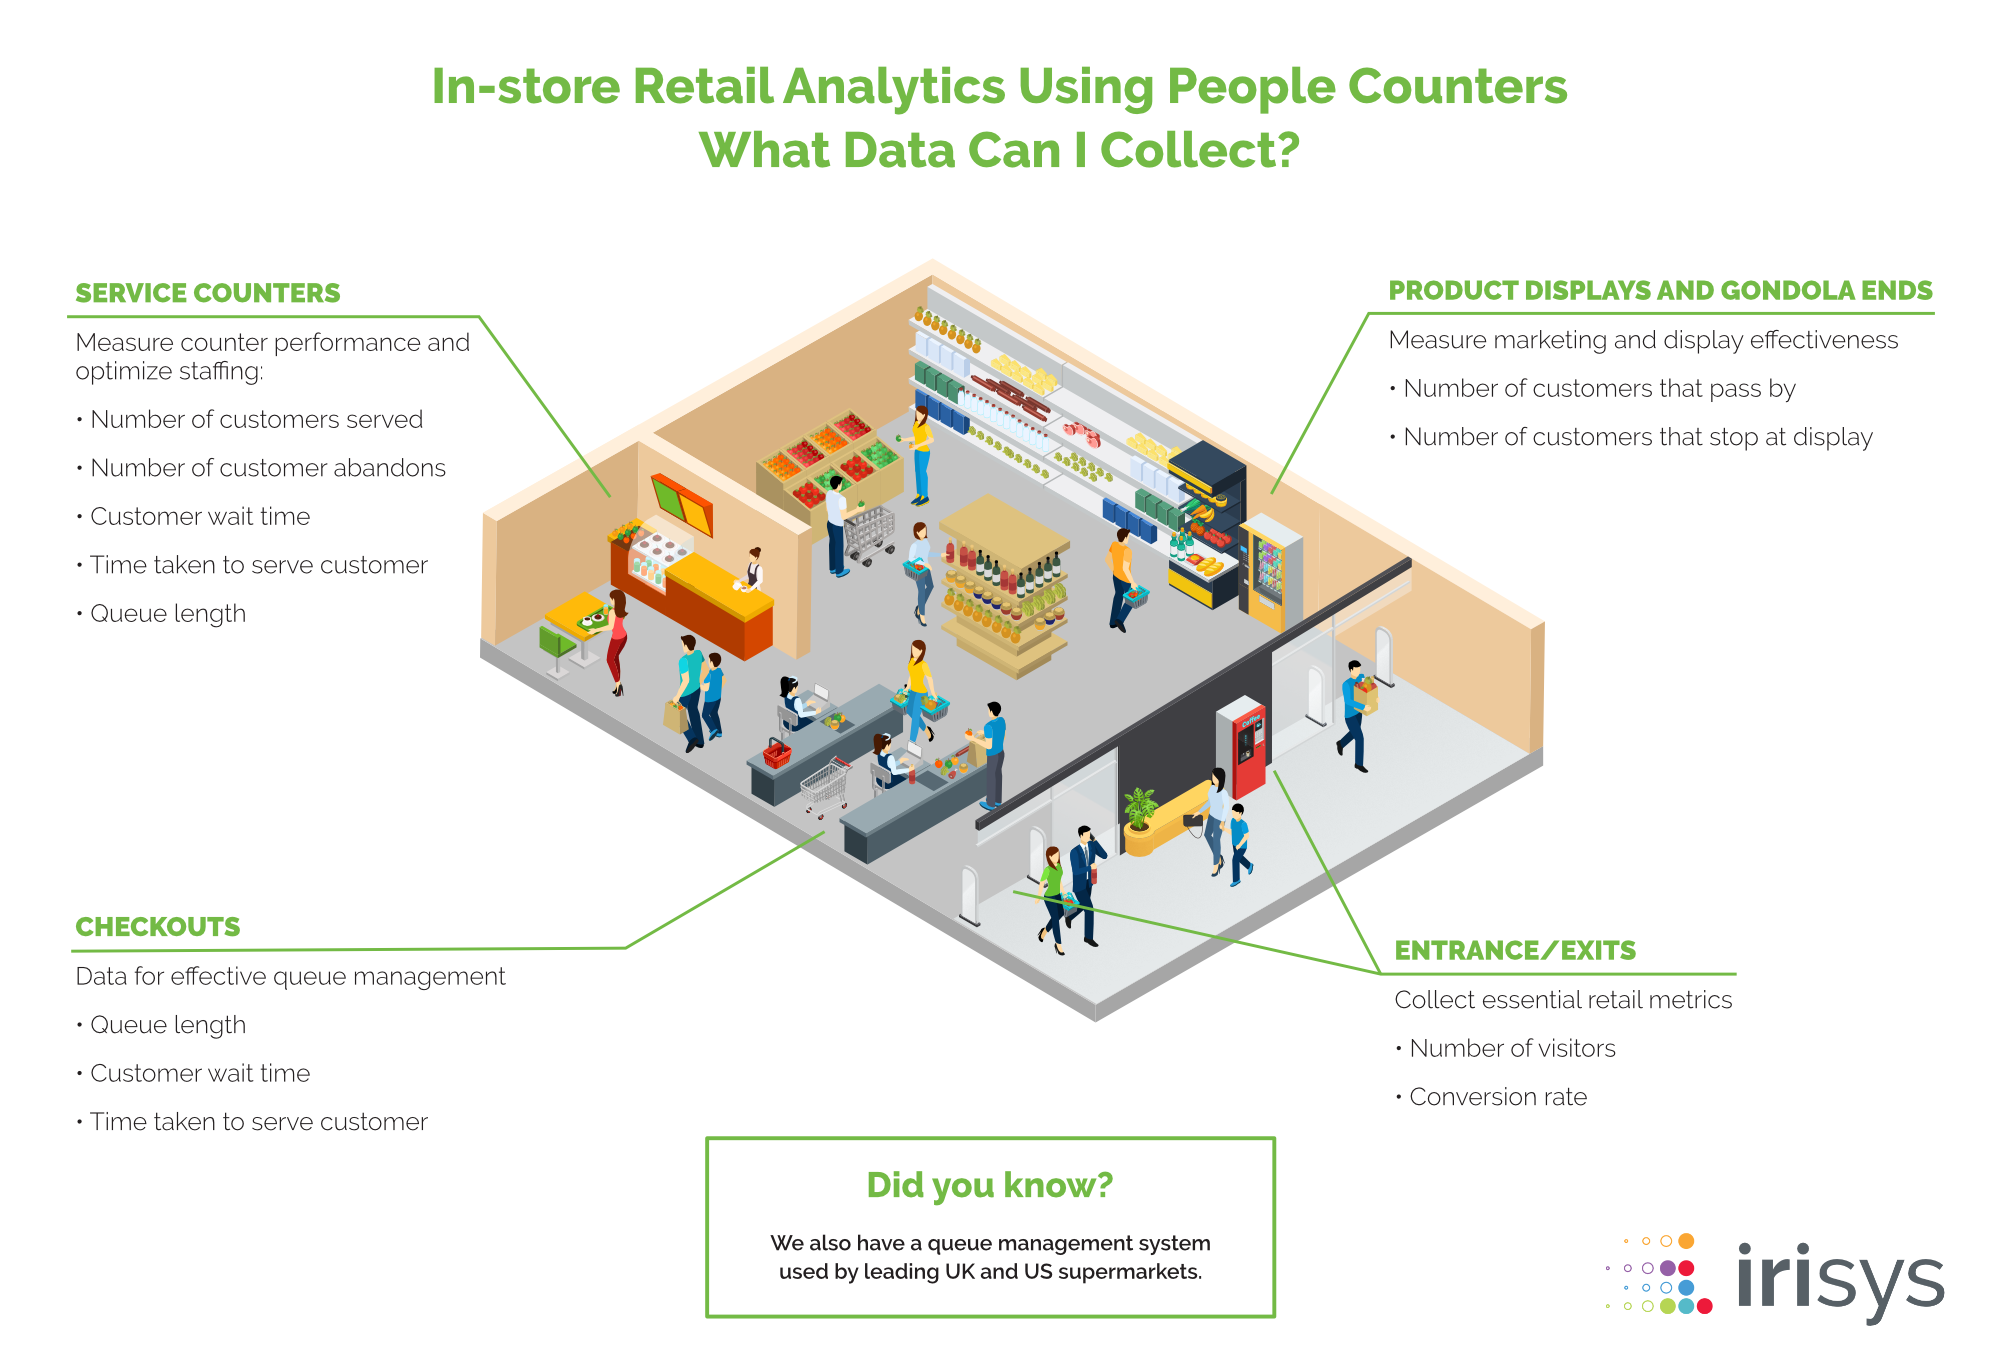 Irisys Retail Analytics Infographic